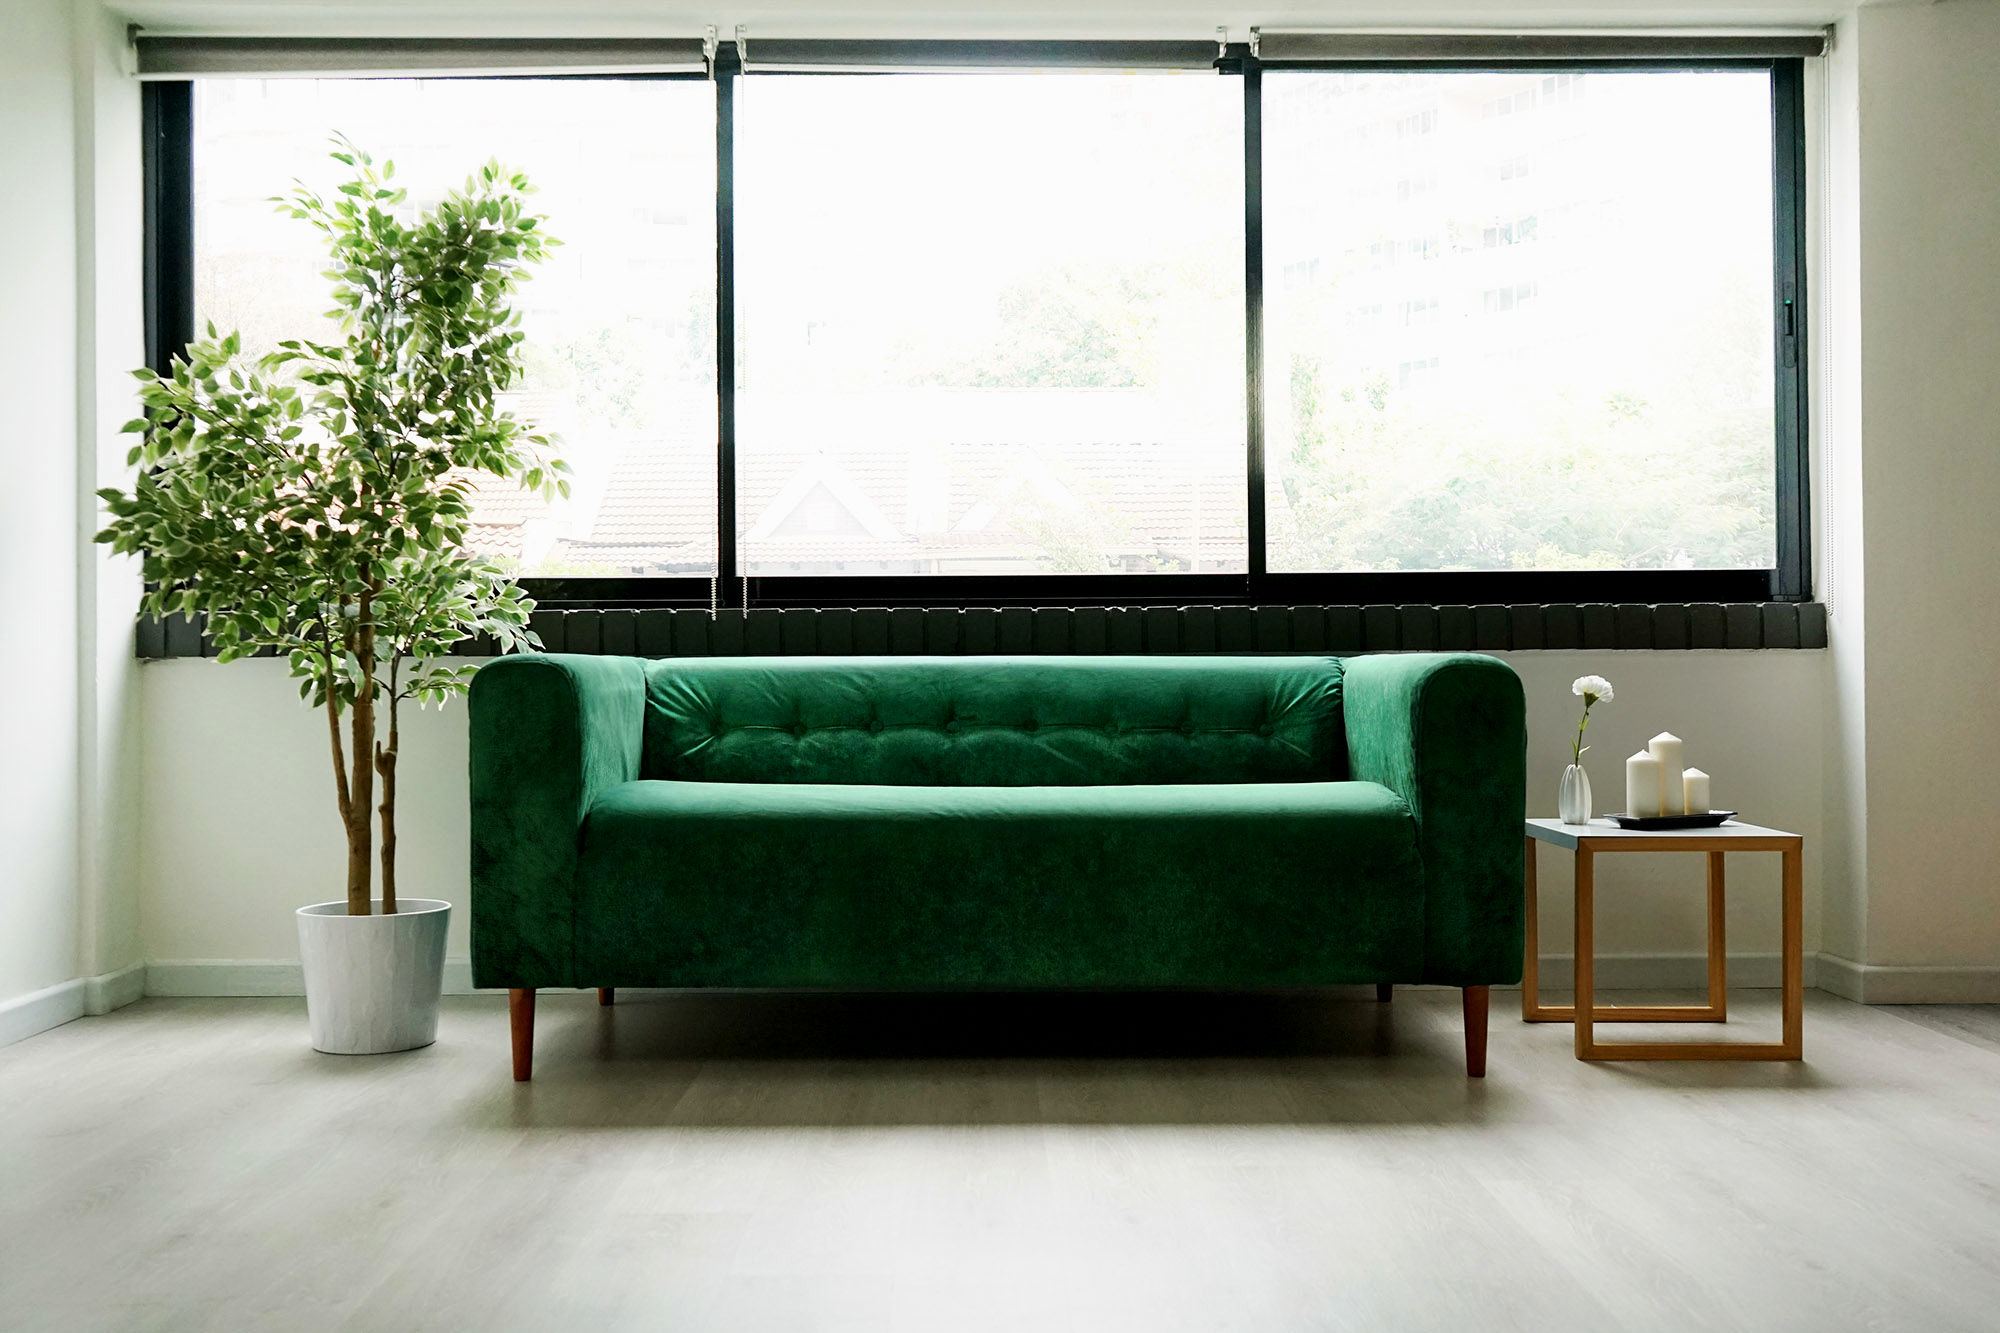 lovely ikea karlstad sofa image-Stylish Ikea Karlstad sofa Inspiration